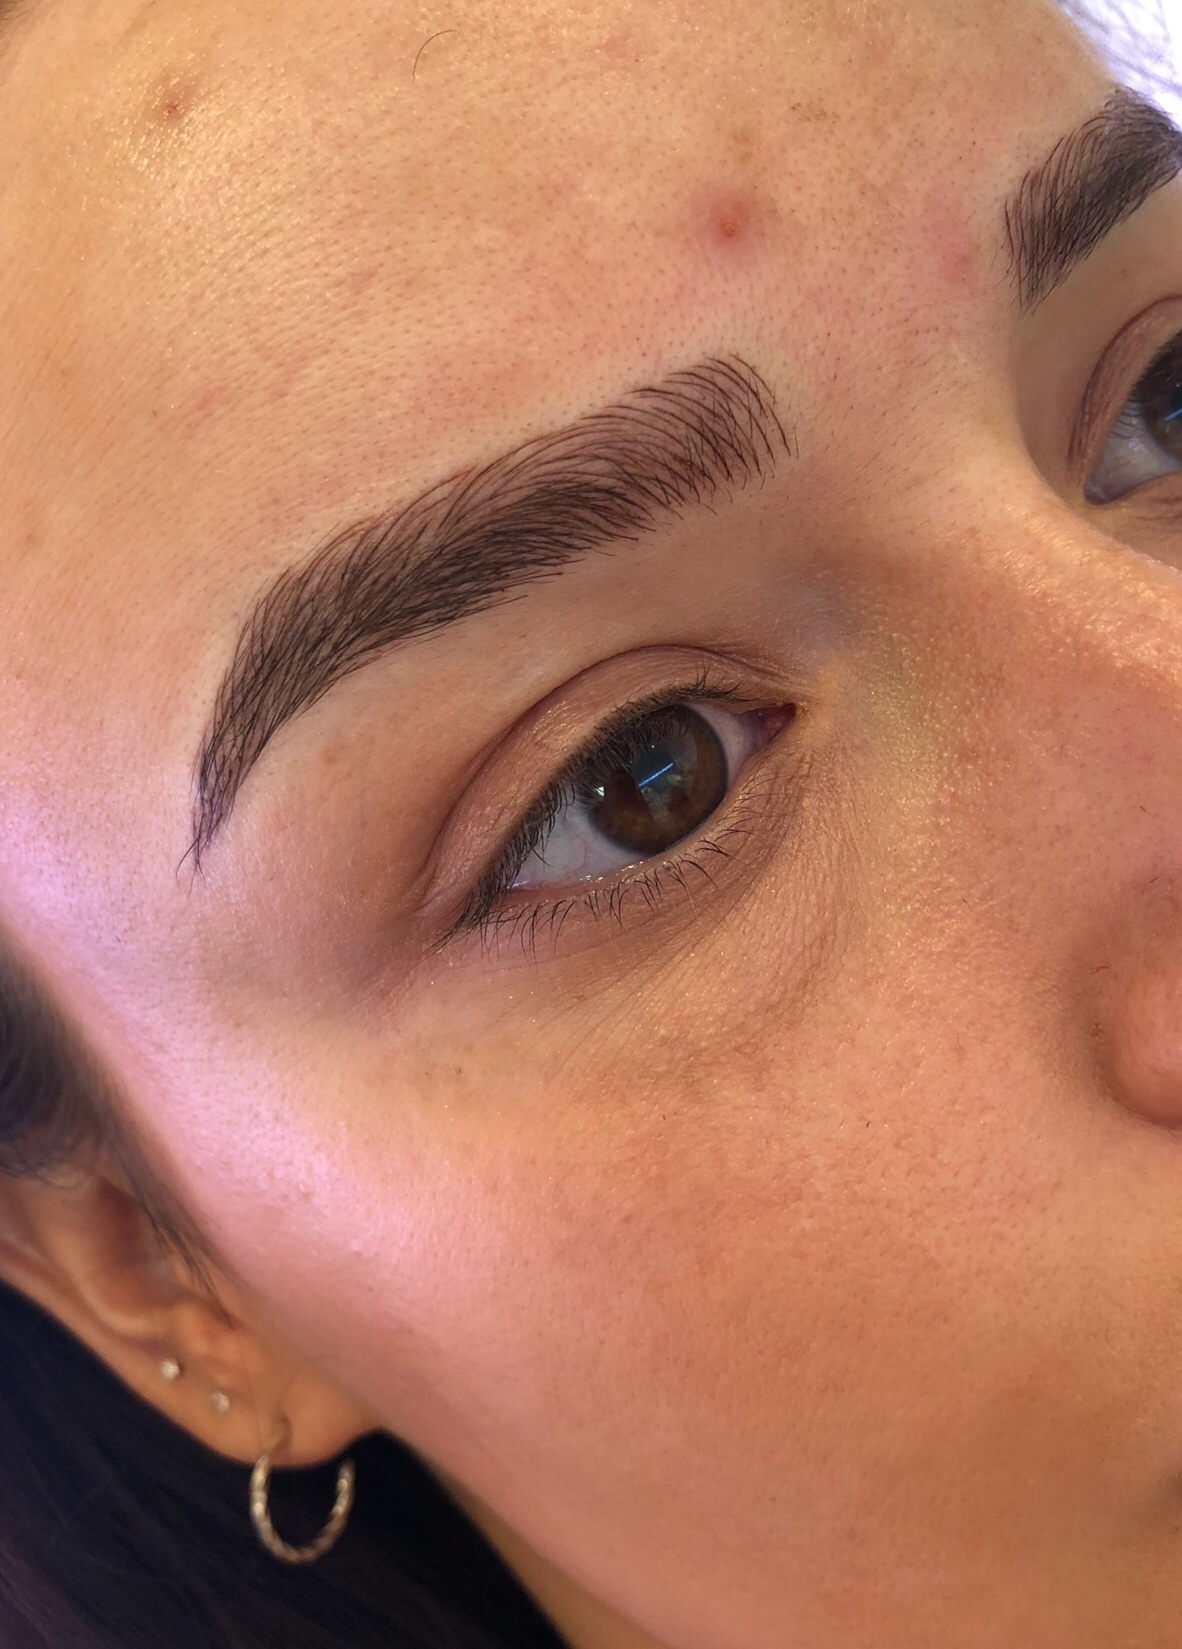 Cambridge Contour Clinic, C.C.C, Microblading before and after, Microblading After, Microblading Before, Microblading, Microblading Cambridge, Microblading near me, Microblading Cambridgeshire, Miroblade, Microbladed, Microblading facts.